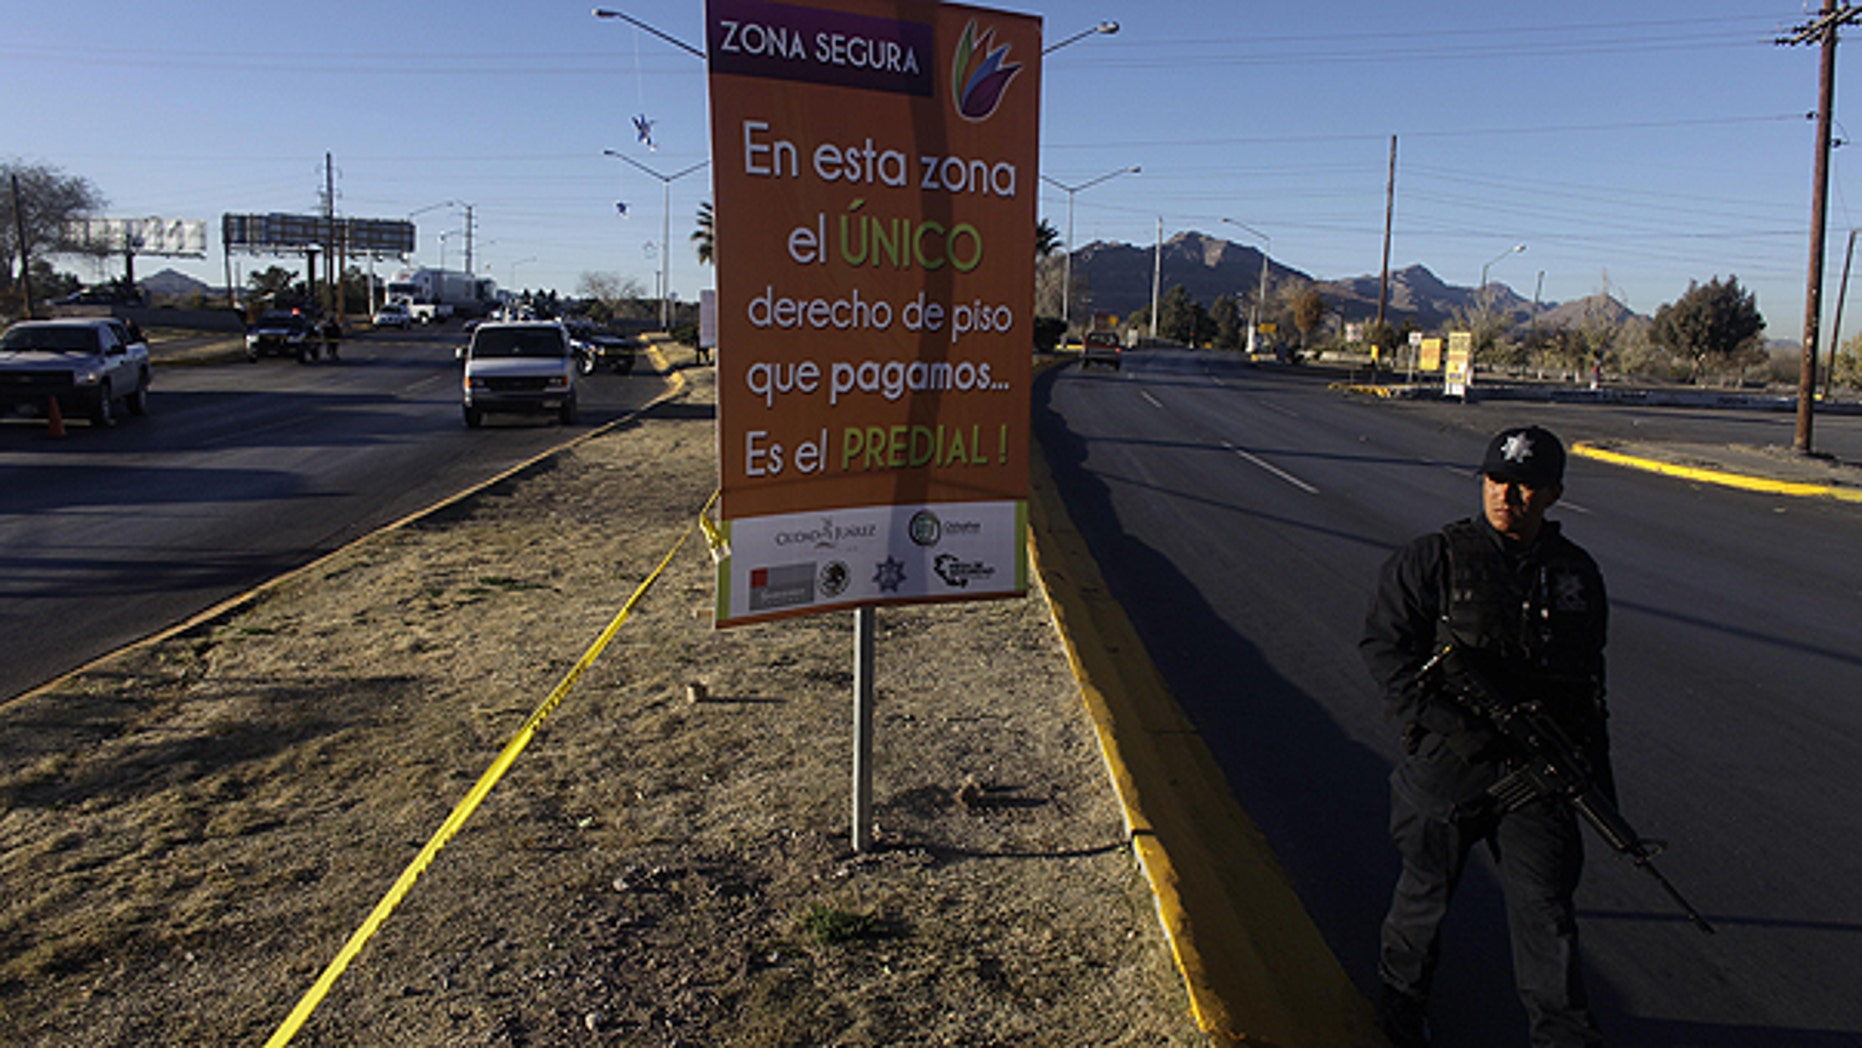 In this Dec. 13, 2010 file photo, a police officer walks beside a cordon for a crime scene in a heavily guarded commercial 'safe' zone in Ciudad Juarez, Mexico.